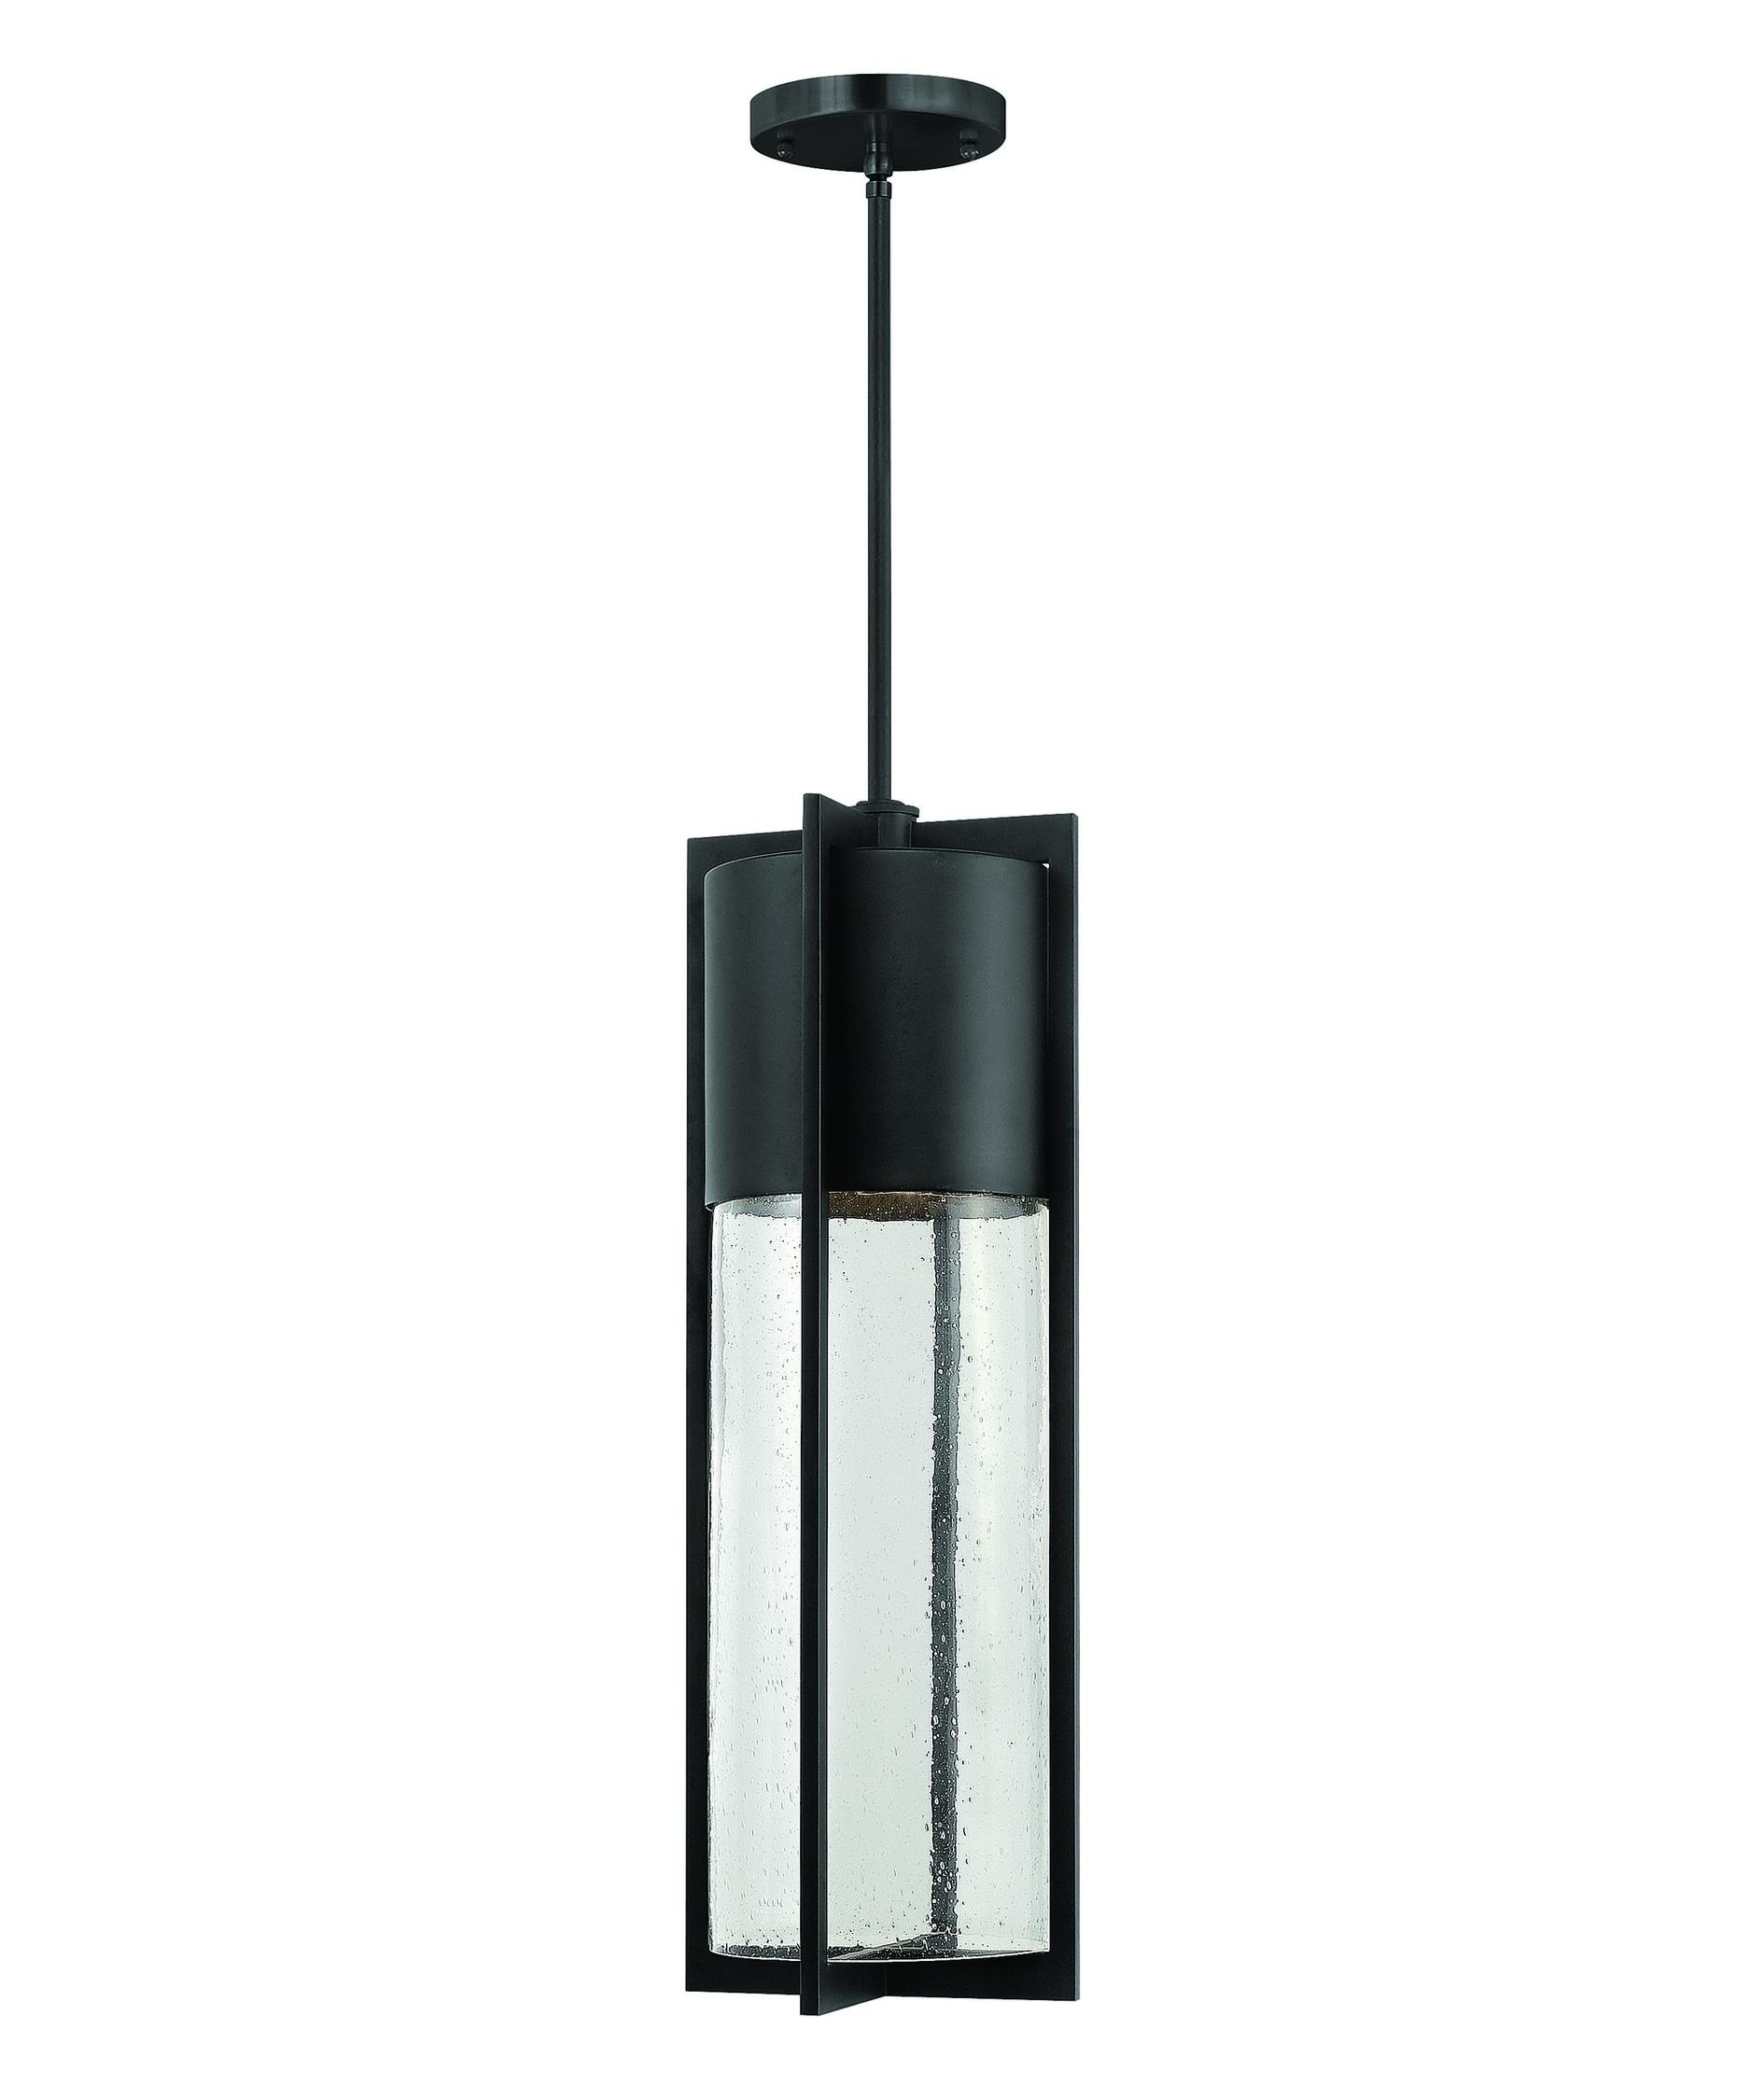 Hinkley Lighting 1328 Shelter 8 Inch Wide 1 Light Outdoor Hanging Throughout Modern Led Hinkley Lighting (#5 of 15)